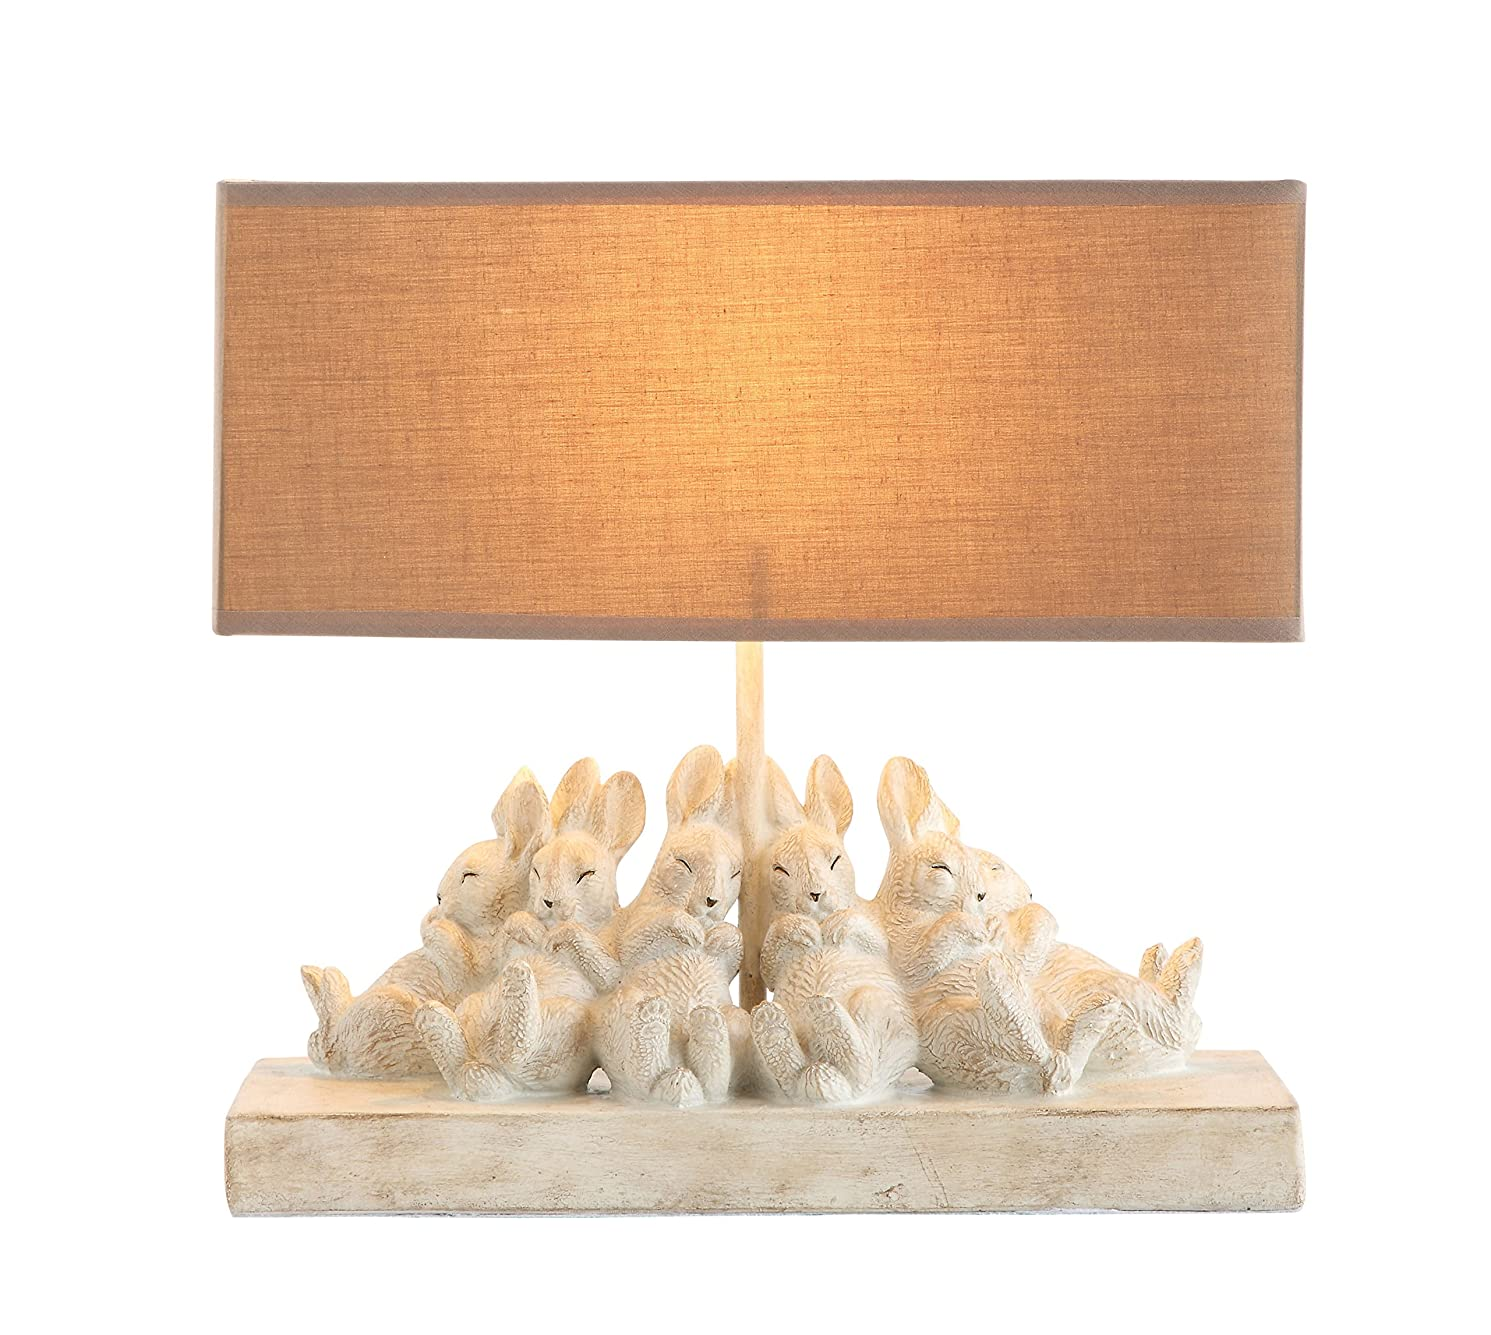 Creative Co-op Whitewashed Rabbit Table Lamp with Sand-Colored Linen Shade, 14